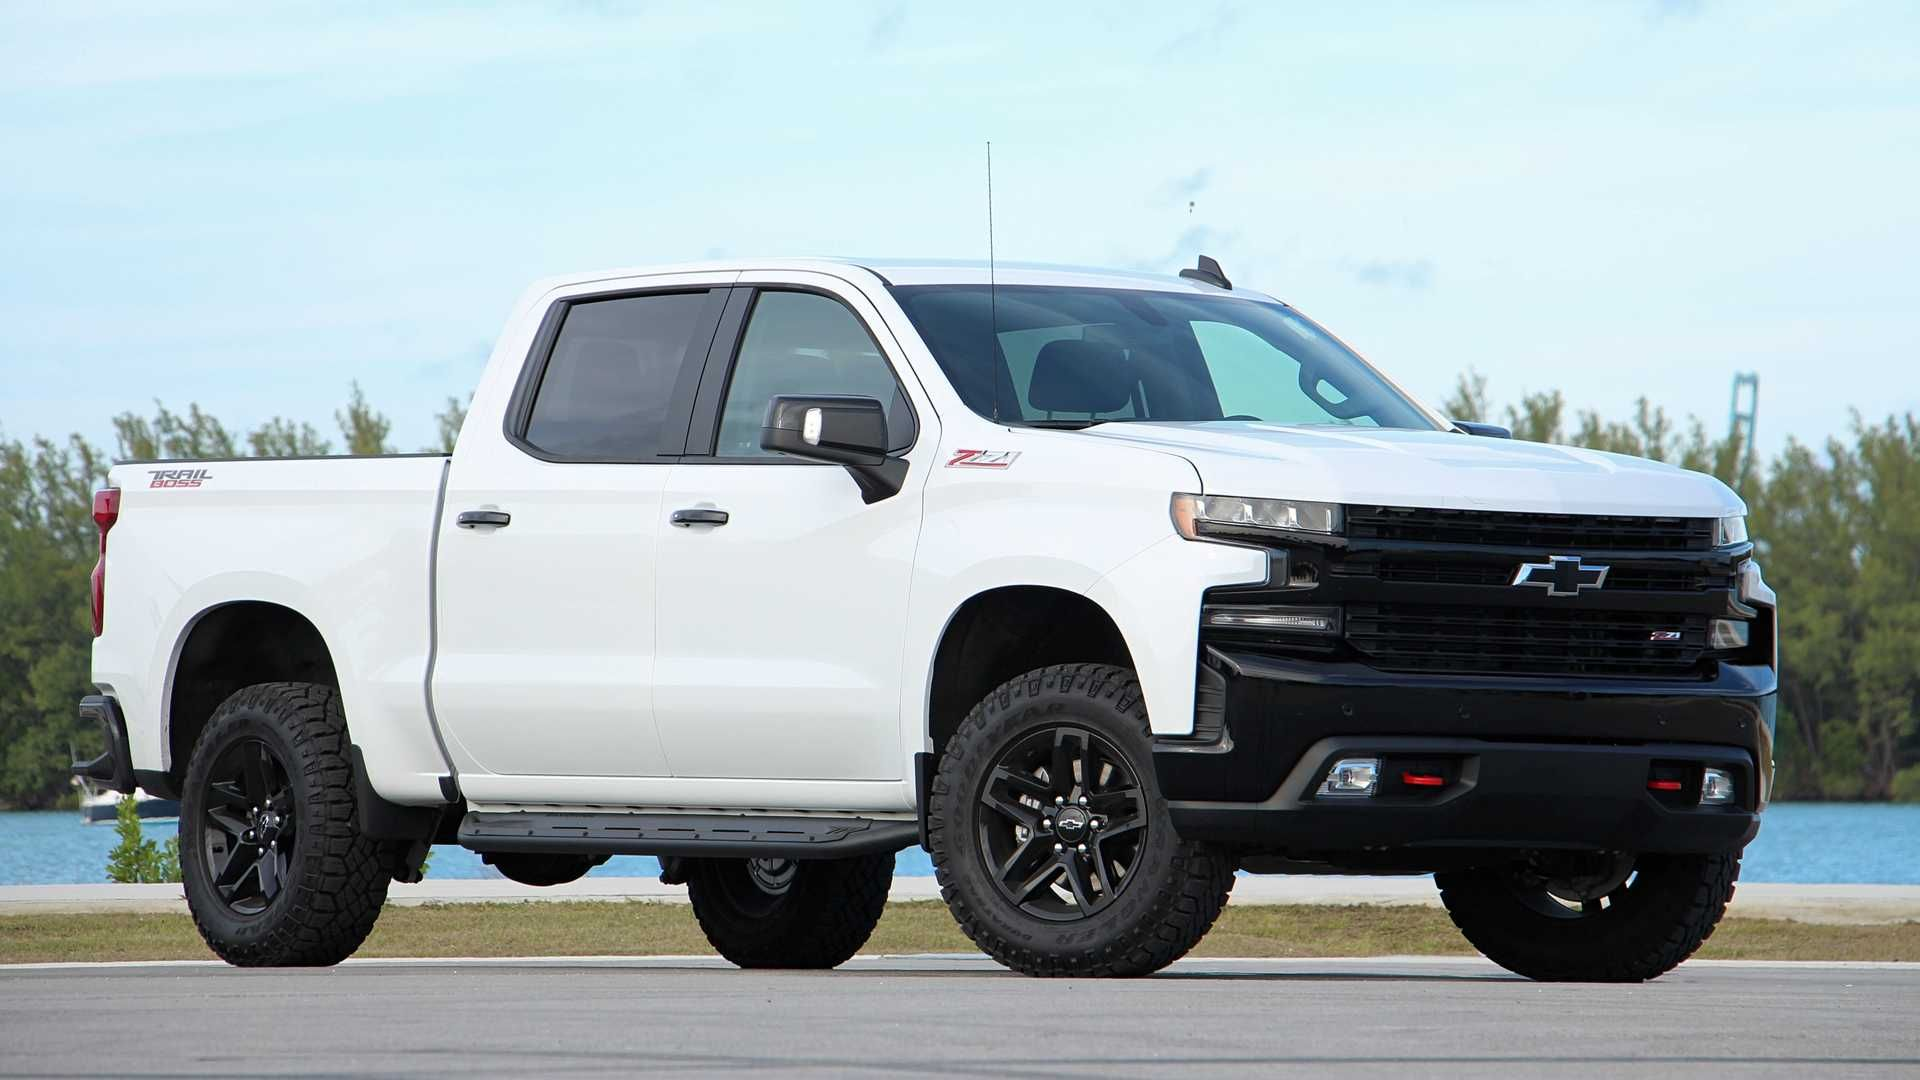 2020 Chevy Silverado Trail Boss Towing Capacity Specs Price